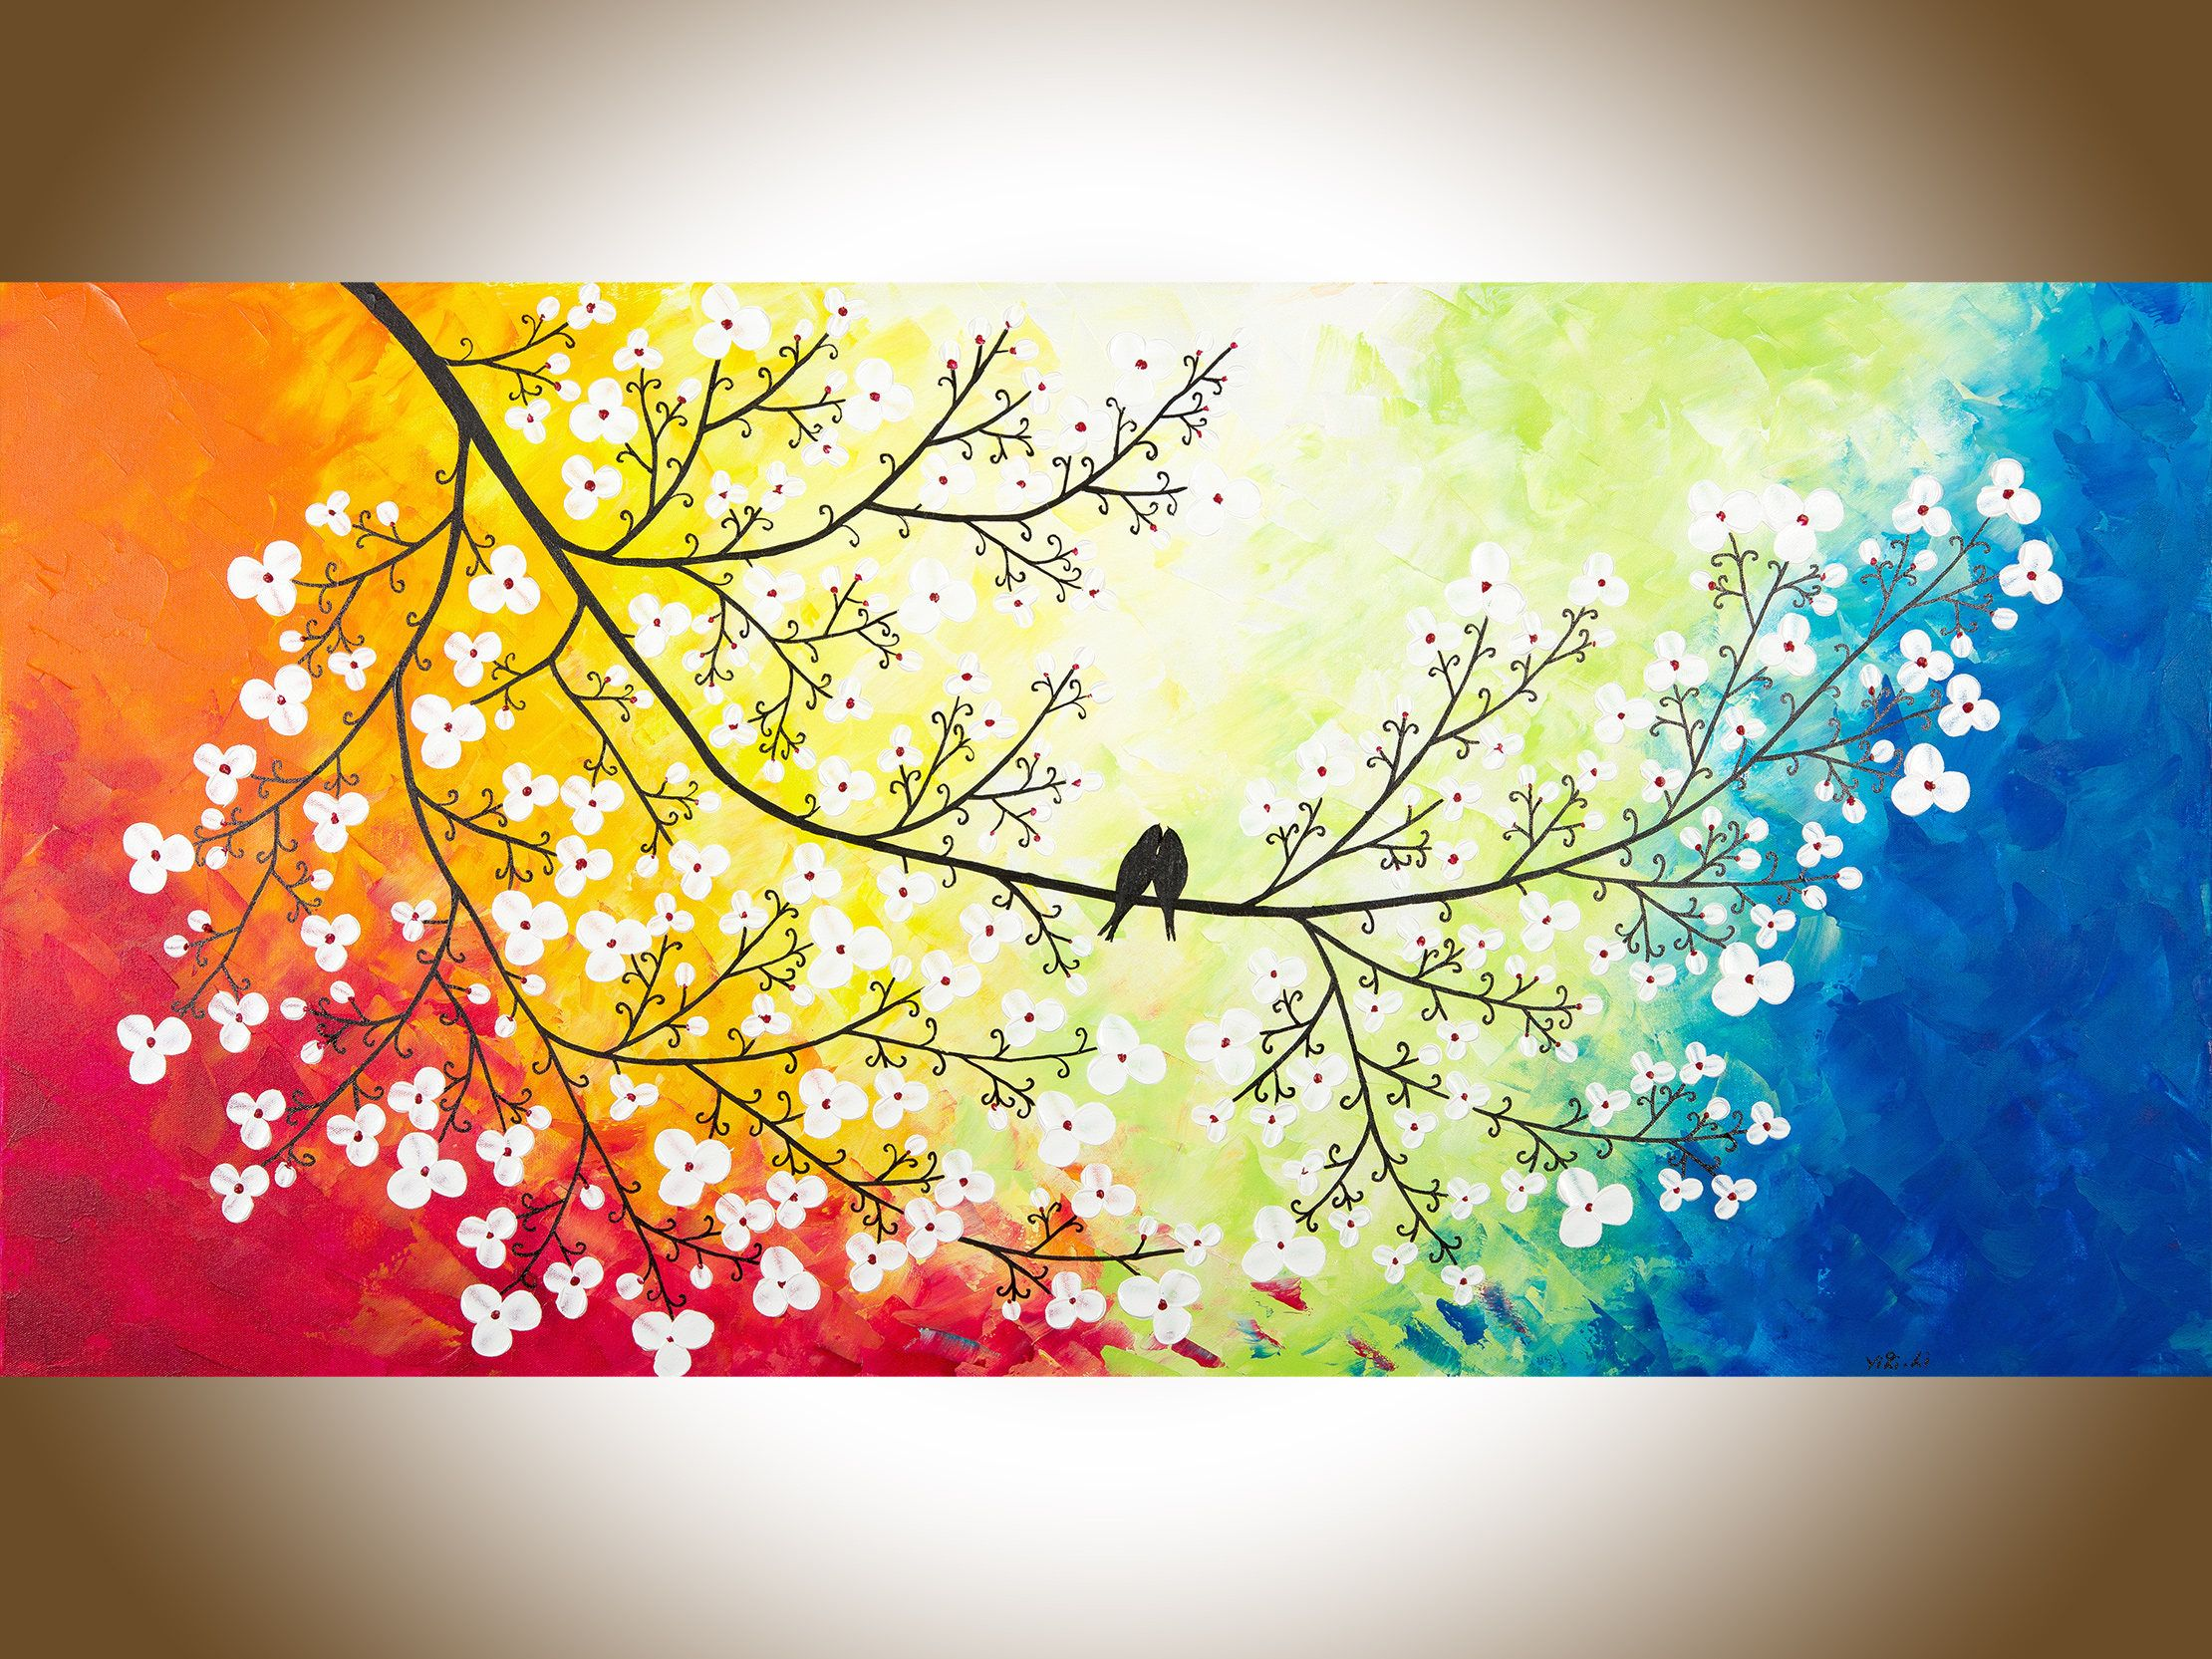 Birds art love birds painting large canvas art red yellow orange ...